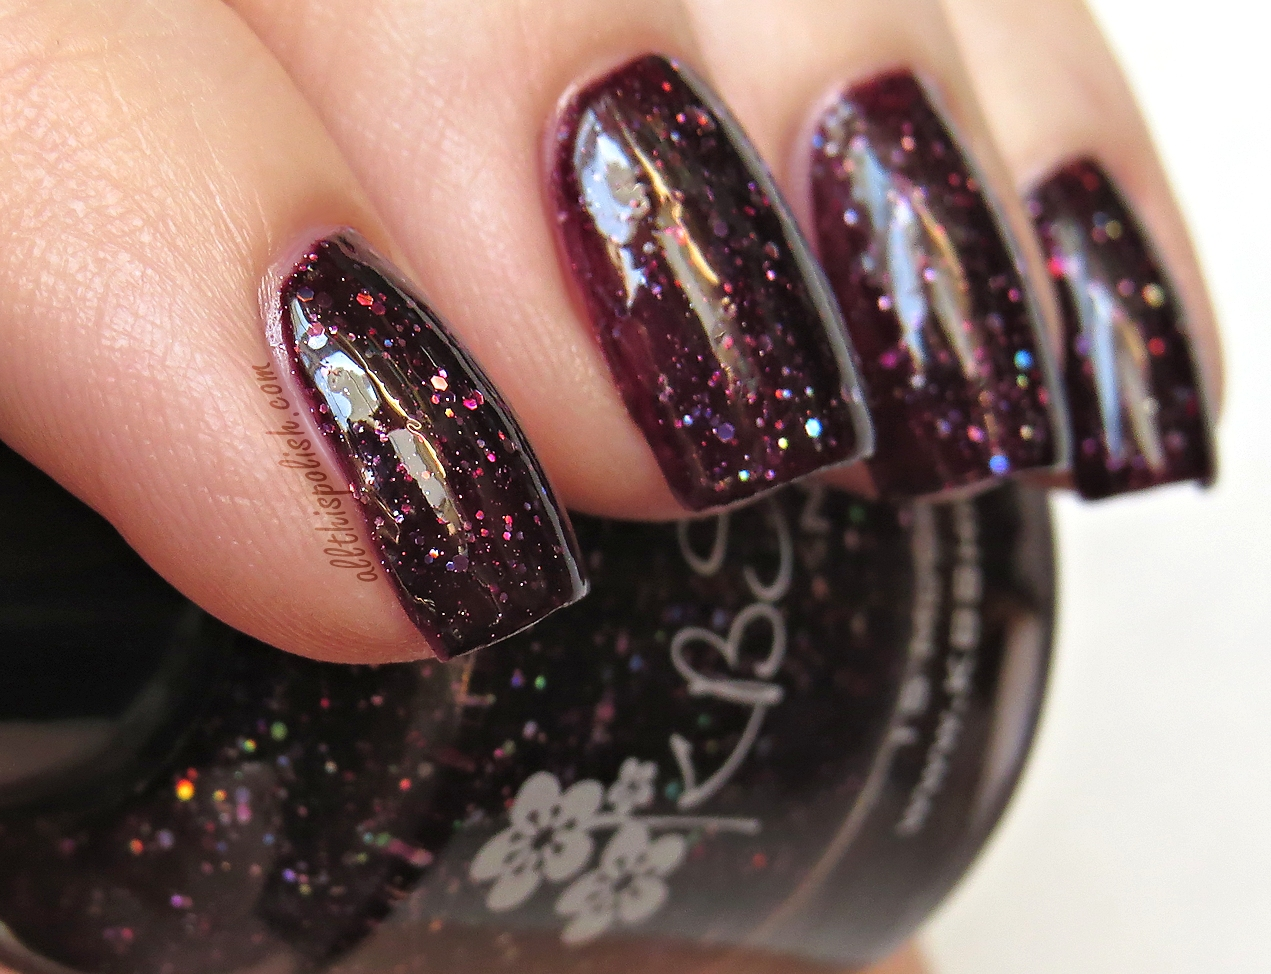 KBShimmer A Raisin To Live